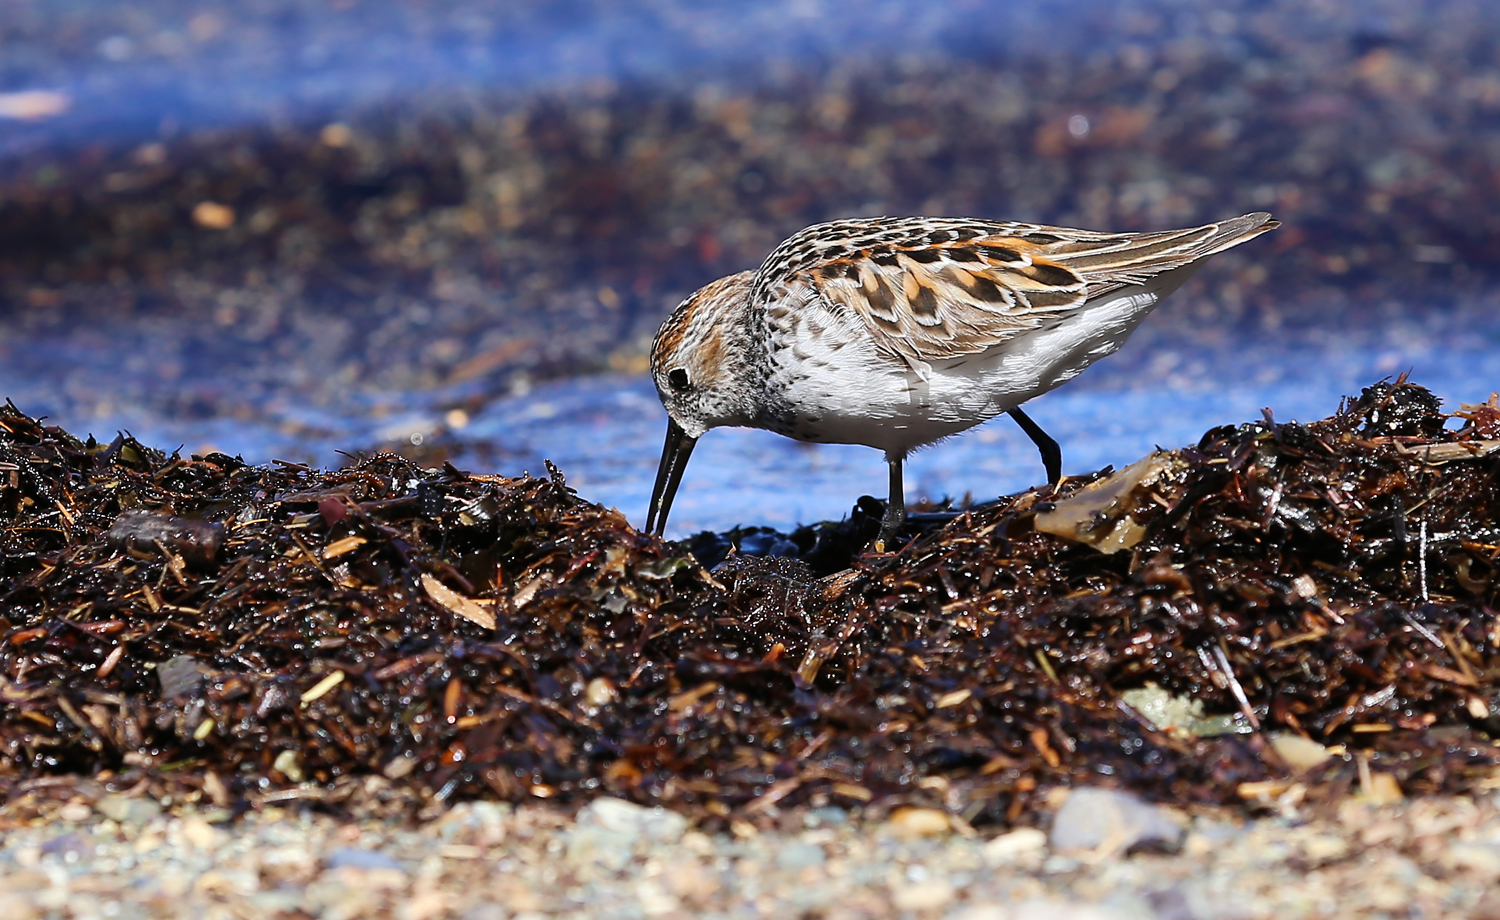 The dark legs, tiny size, and long, slightly down-curved beak suggest that this is a Western sandpiper ( Calidris mauri ).